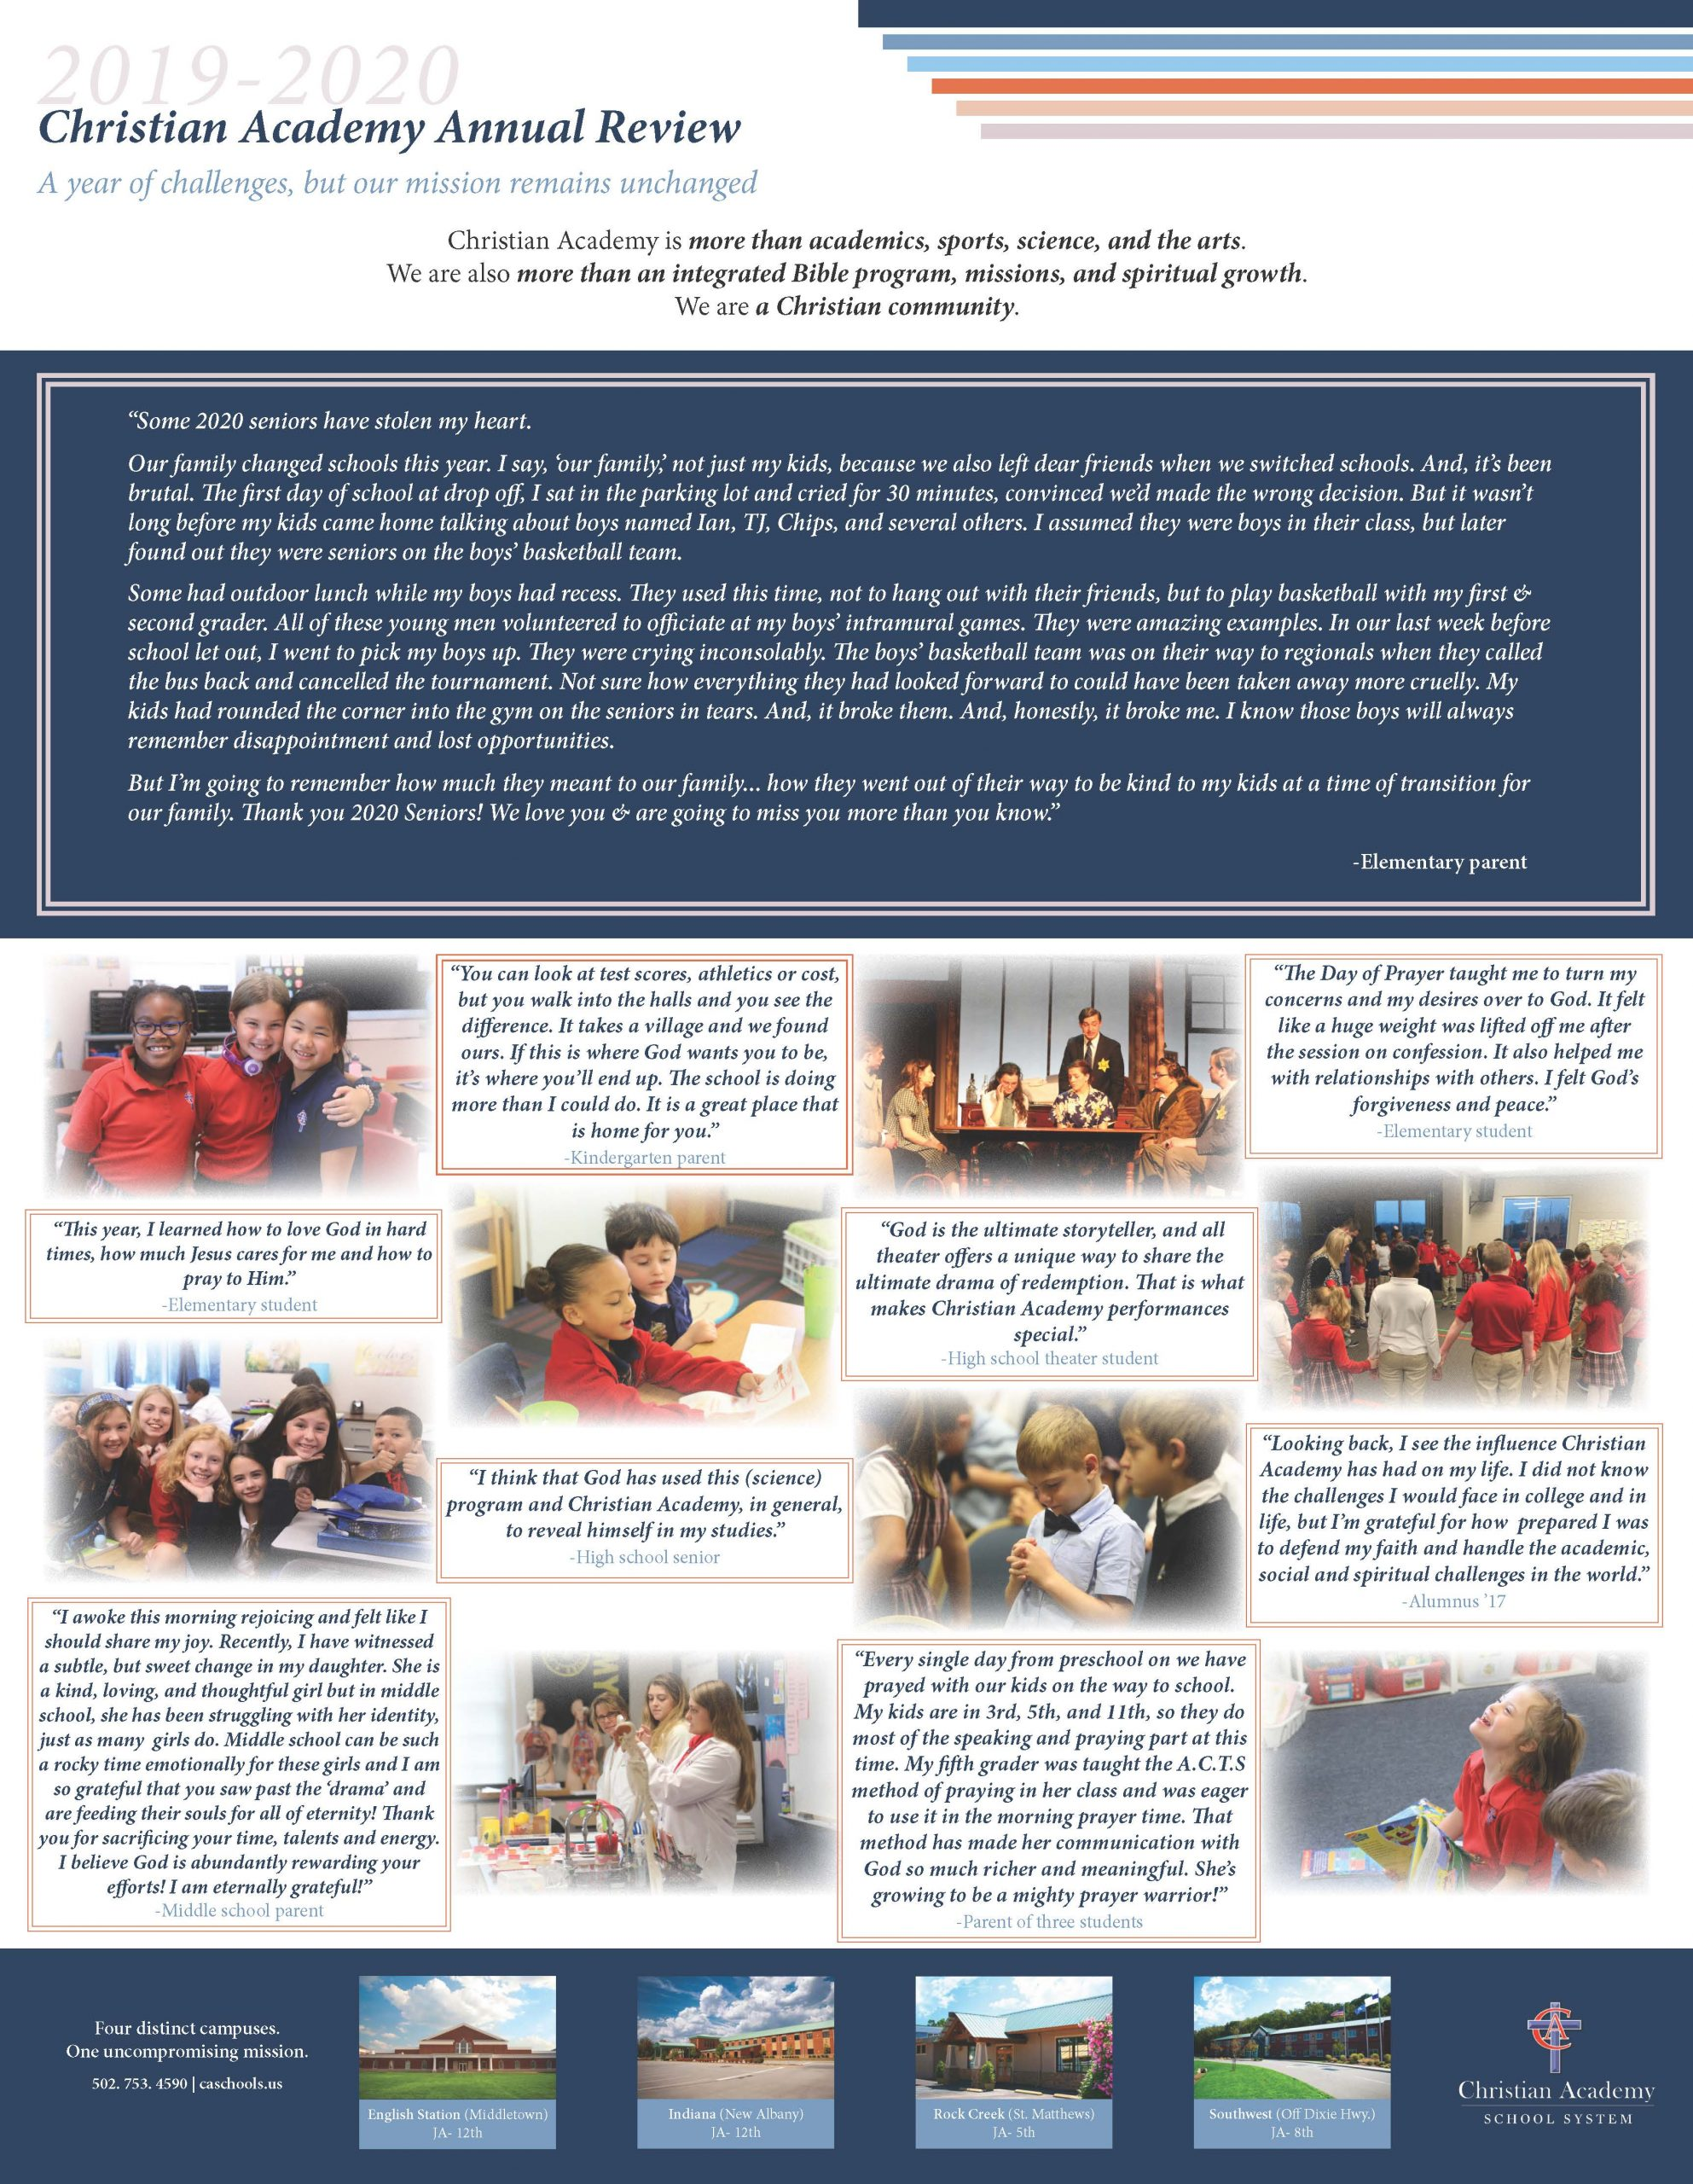 Christian Academy School System | 2019-2020 Annual Review